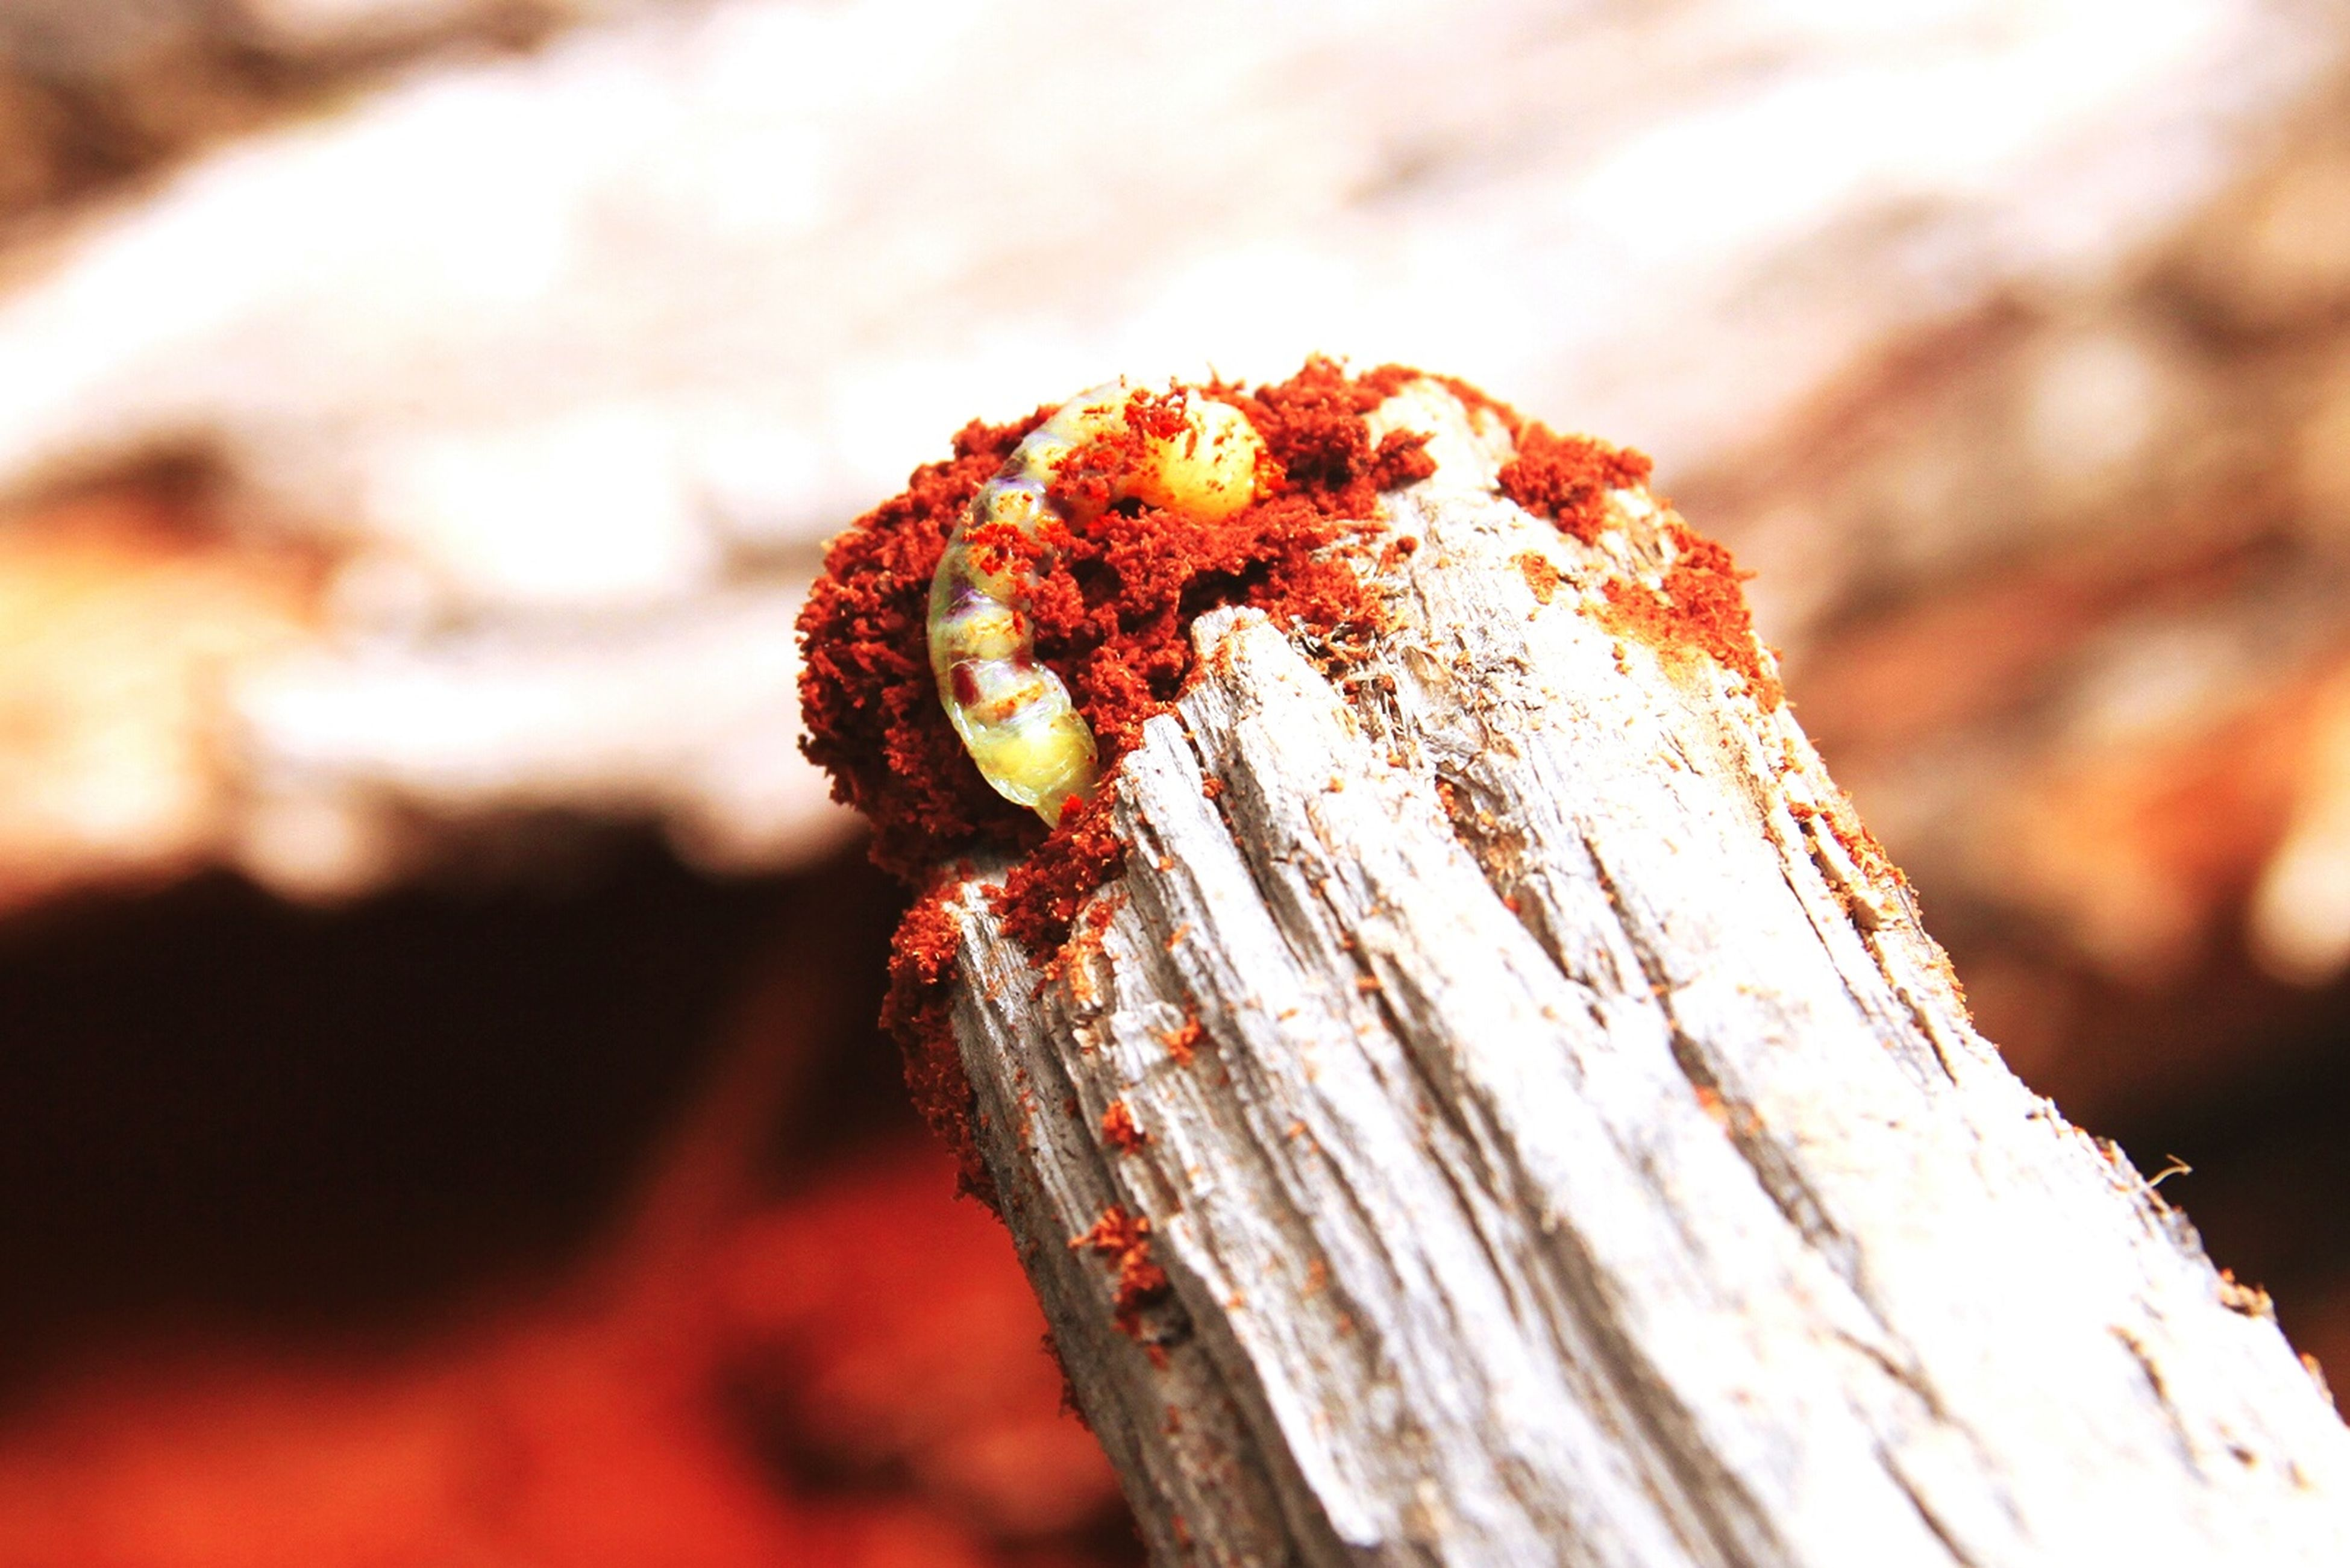 focus on foreground, close-up, animal themes, selective focus, one animal, insect, red, nature, wood - material, animals in the wild, wildlife, textured, brown, outdoors, day, no people, tree trunk, beauty in nature, natural pattern, dry